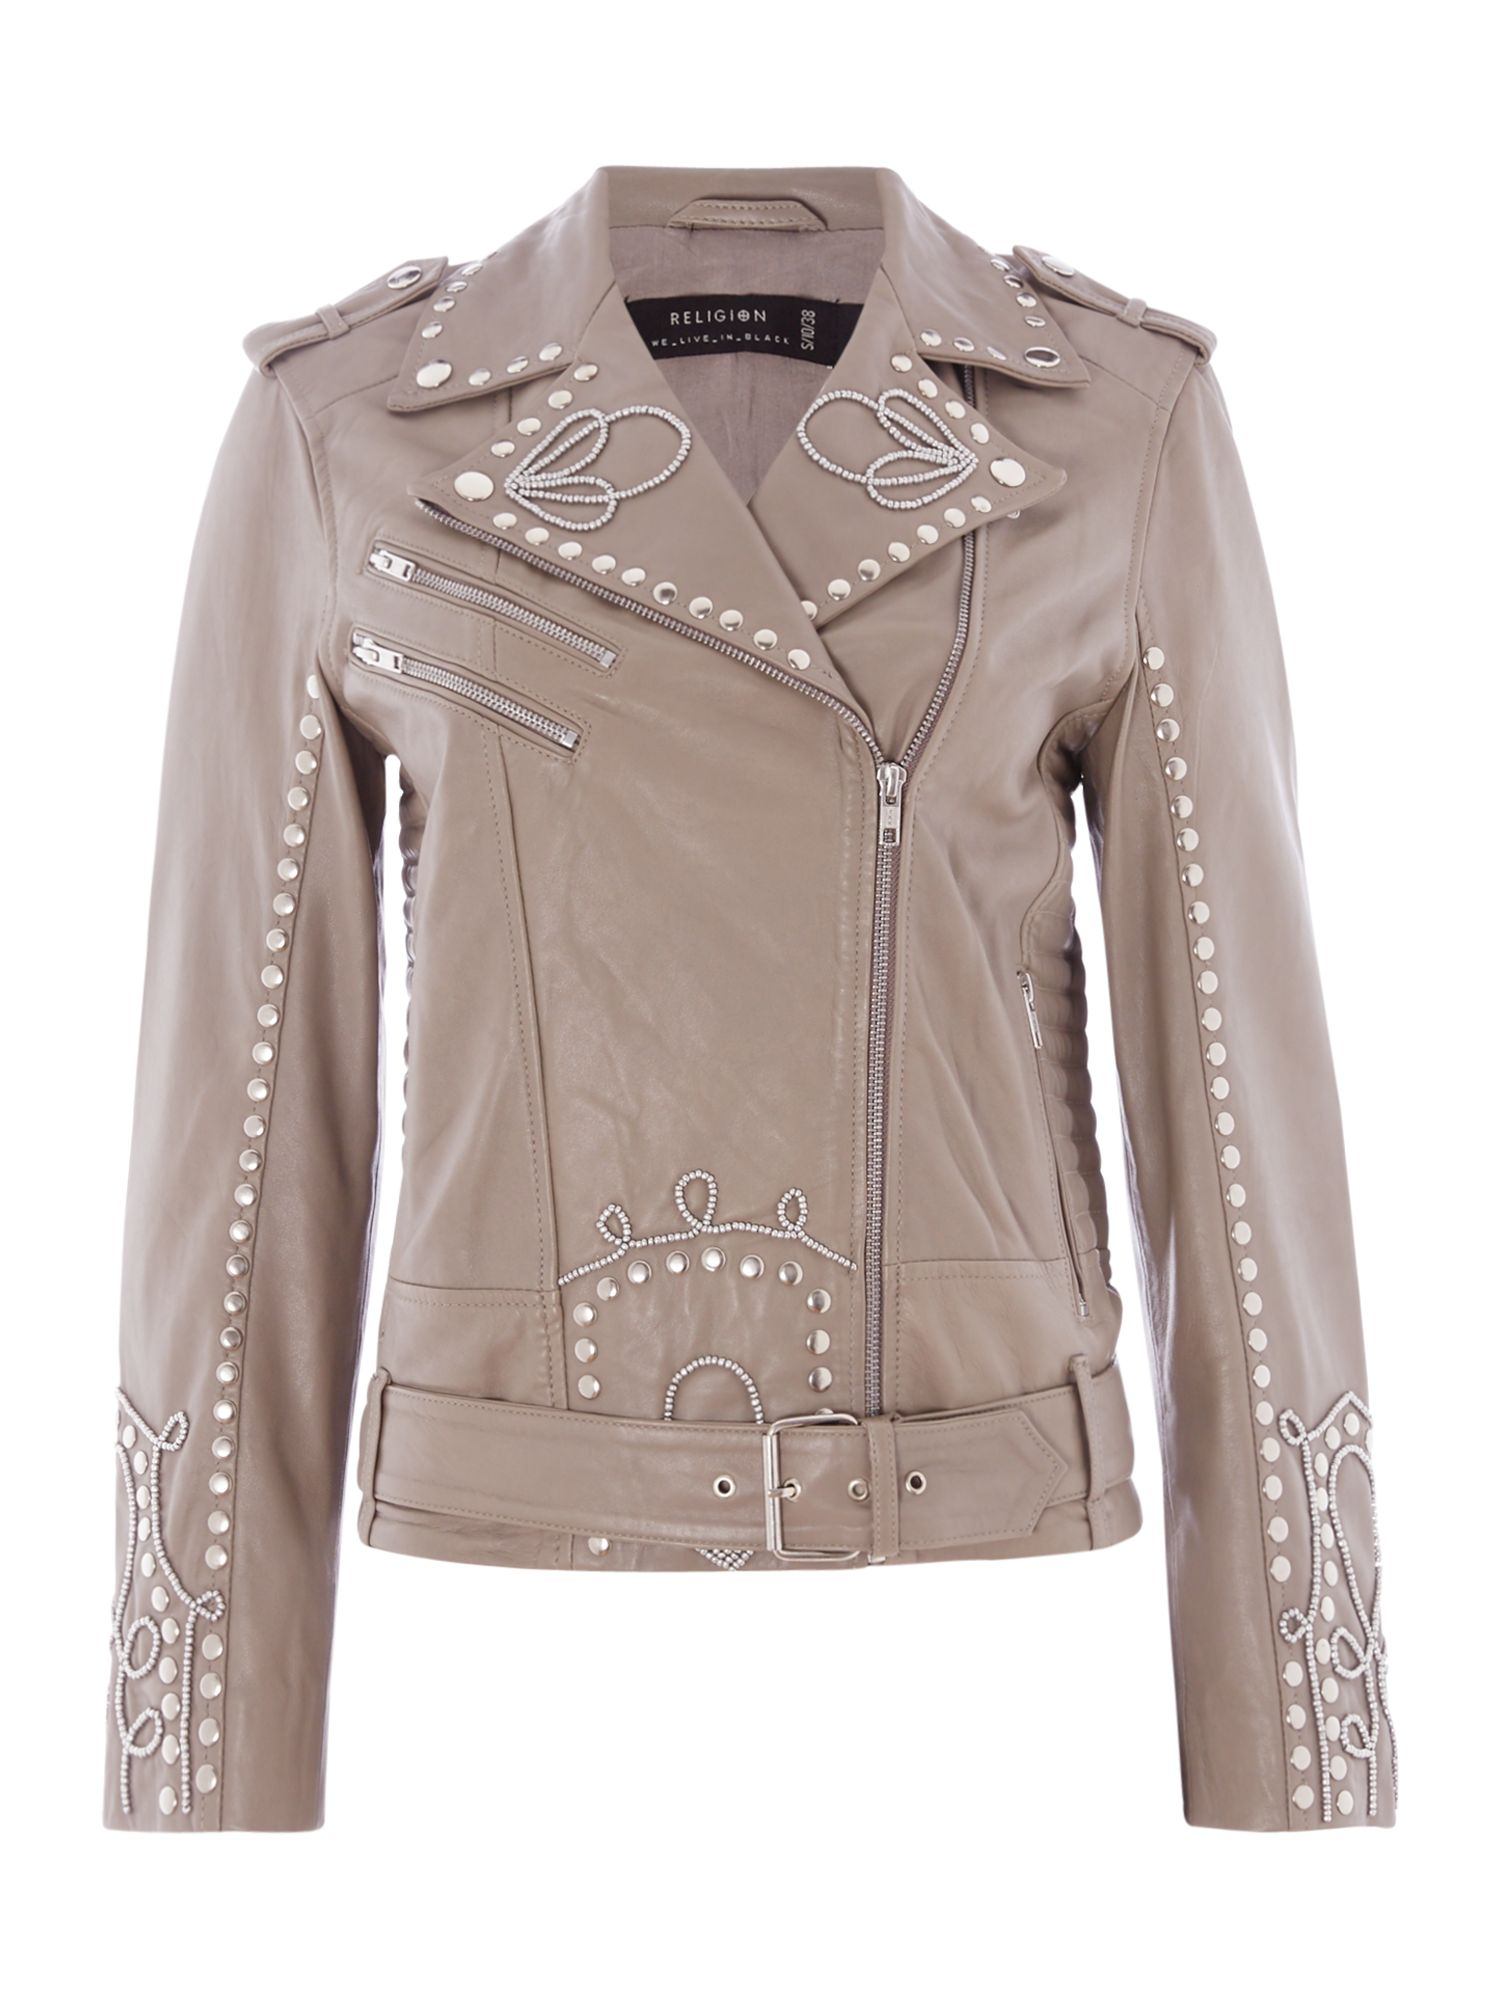 Religion Excellent biker jacket, Taupe